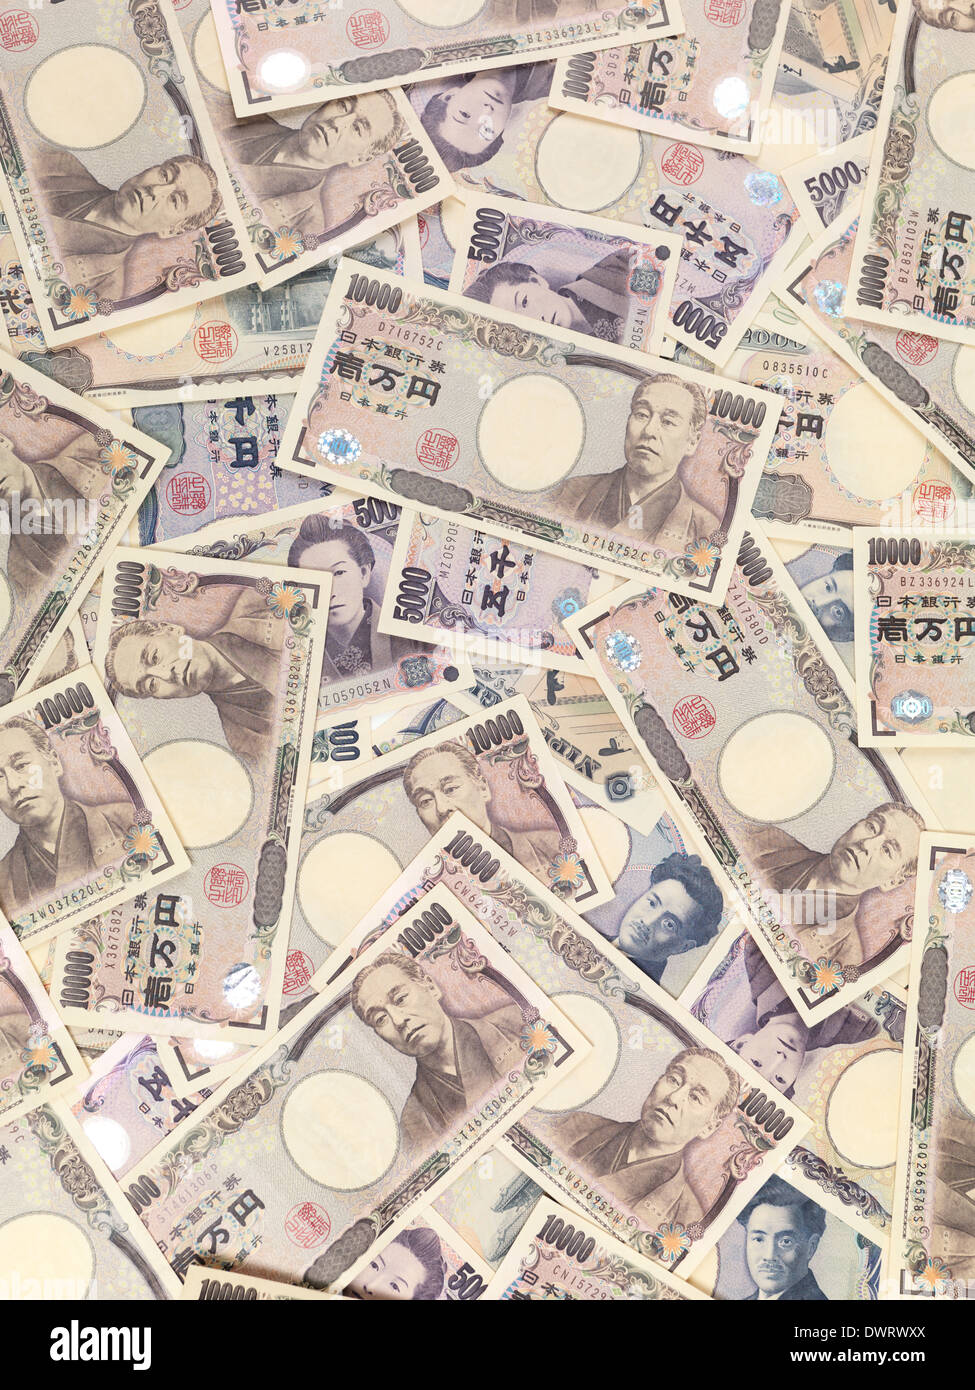 Japanese Yen money bills, closeup of currency background - Stock Image